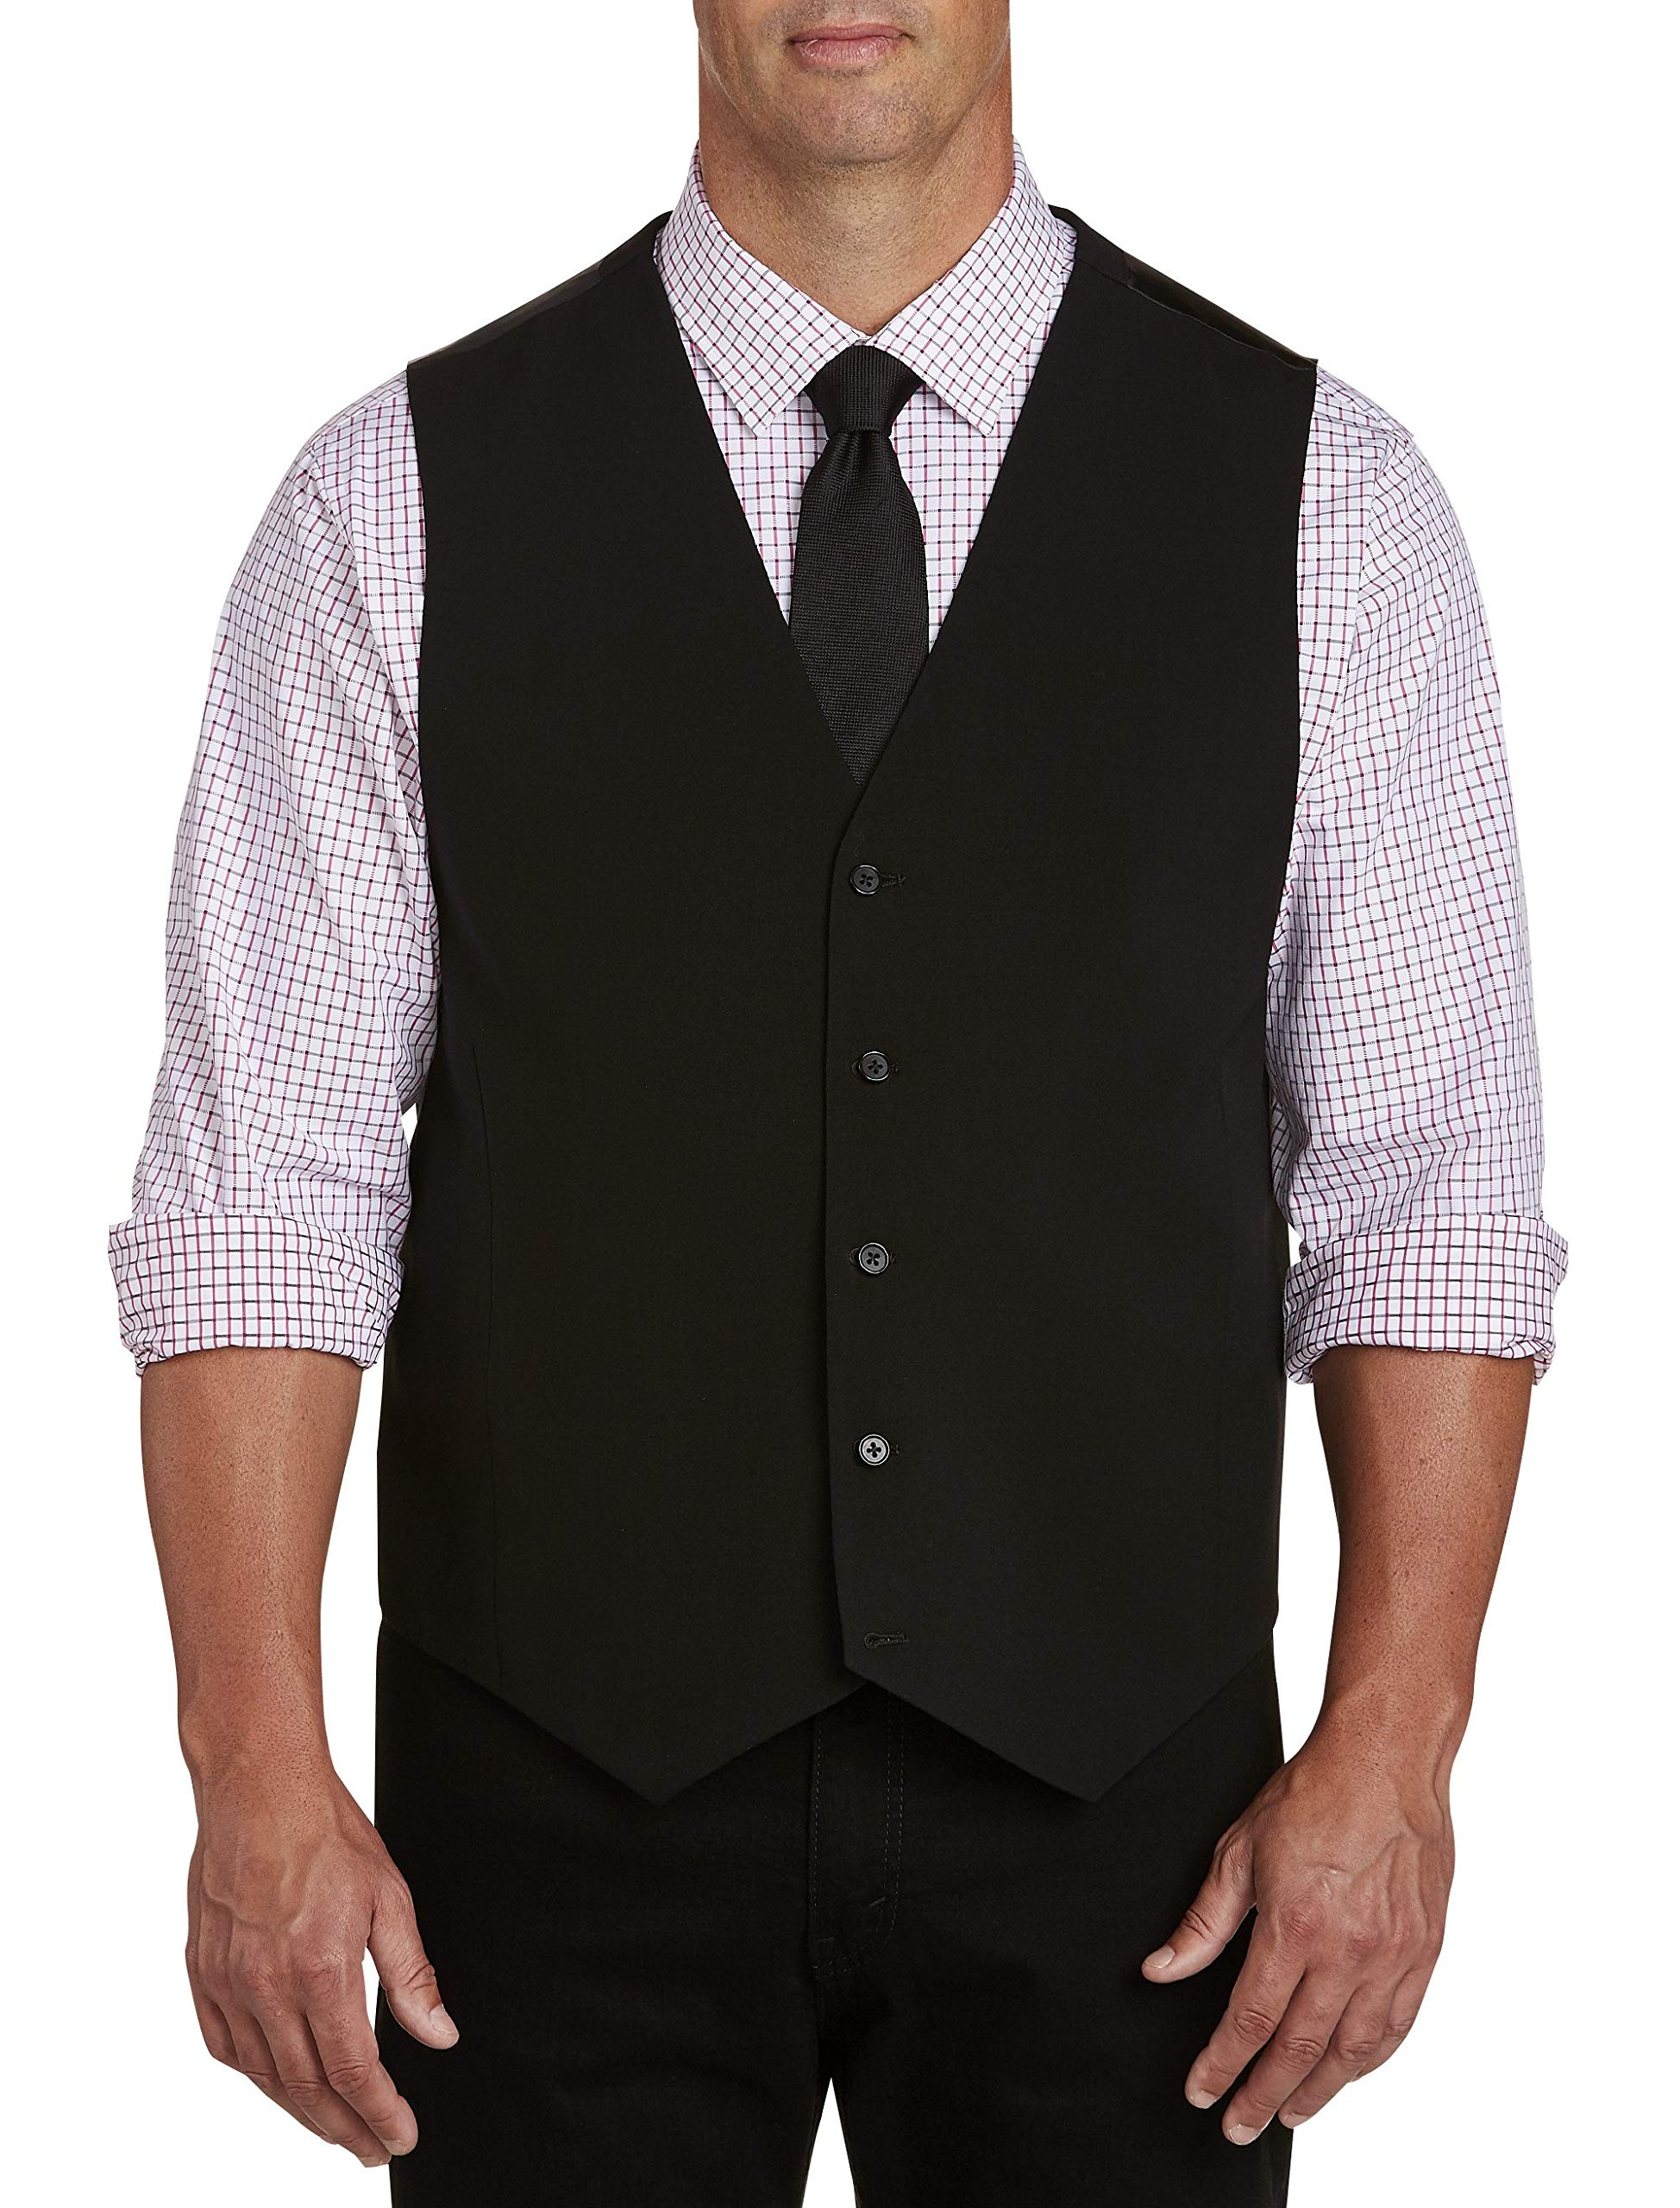 Synrgy by DXL Big and Tall Vest Black by Unknown